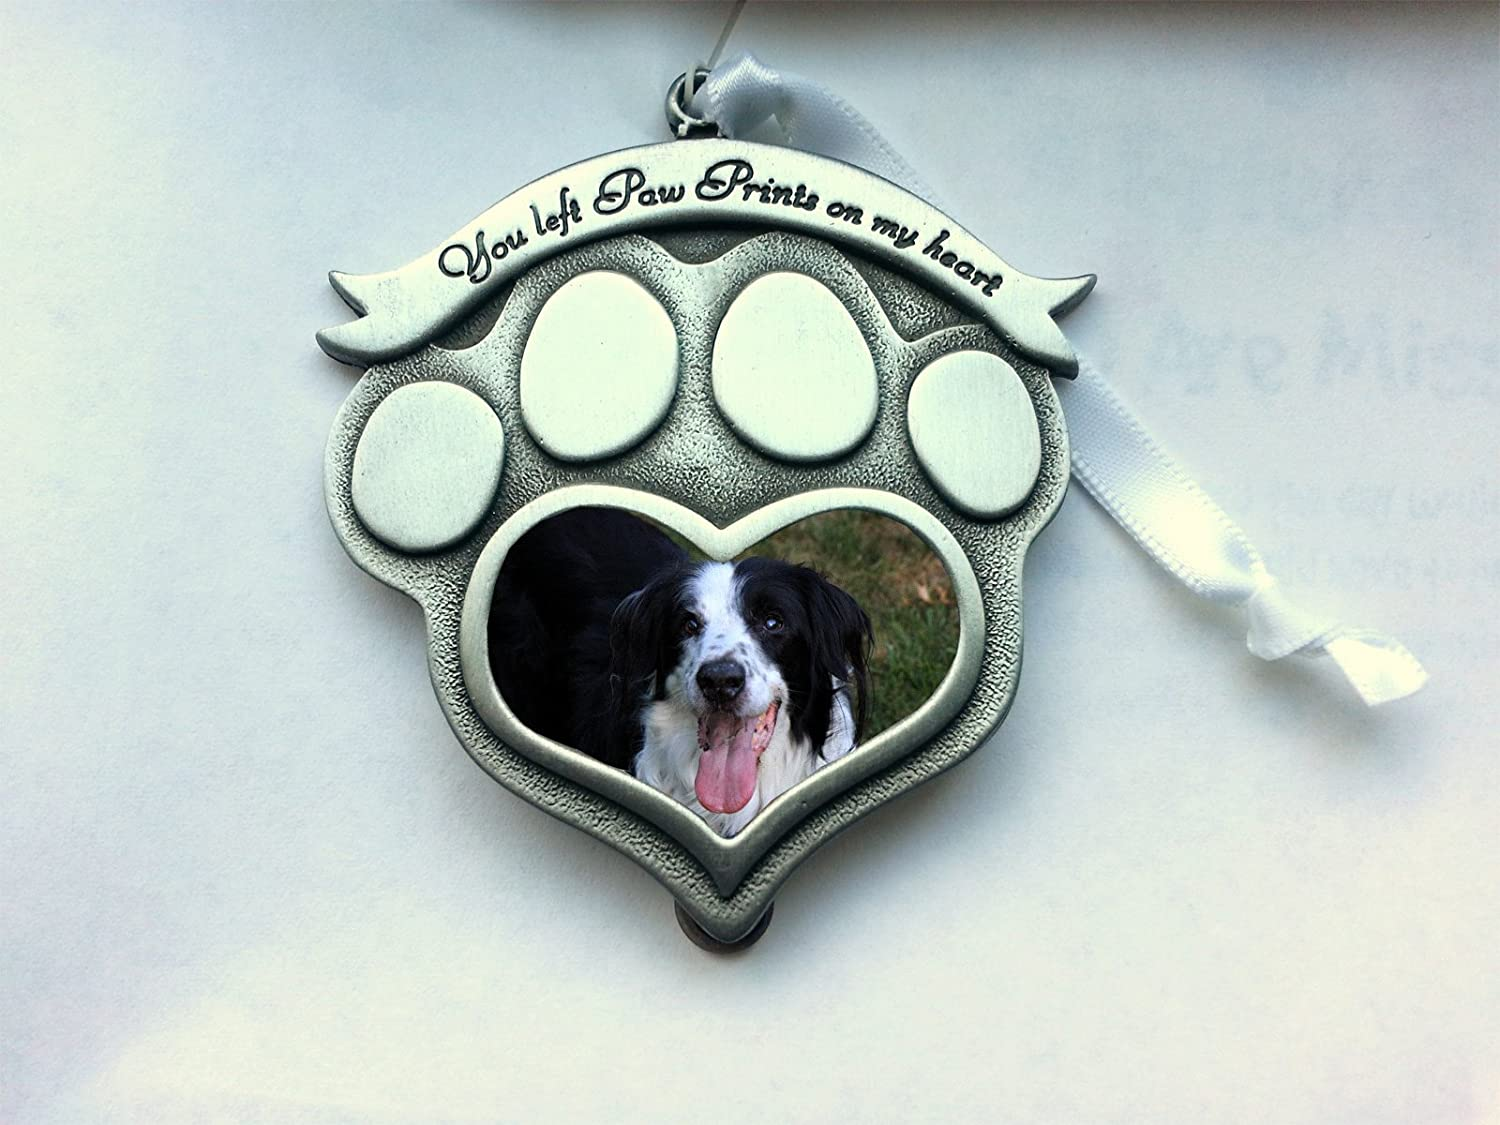 Pet Memorial Photo Frame Ornament You Left Paw Prints on My Heart